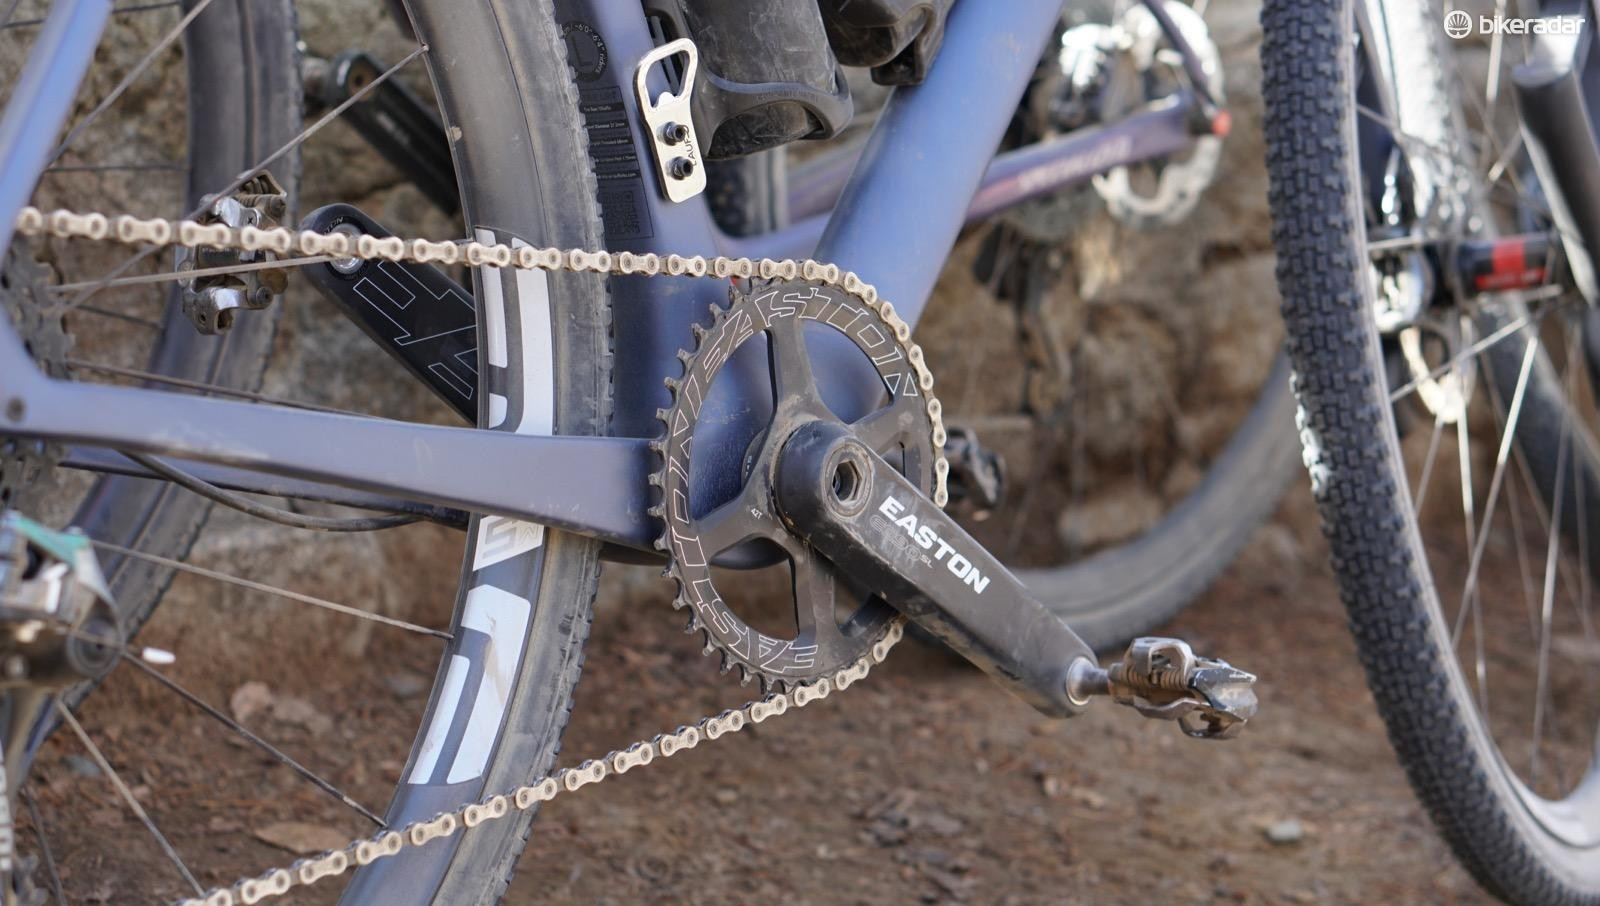 Beer or Gear? Lauf is better most gravel racers will opt for a 1x and a beer opener over an eTap front derailleur